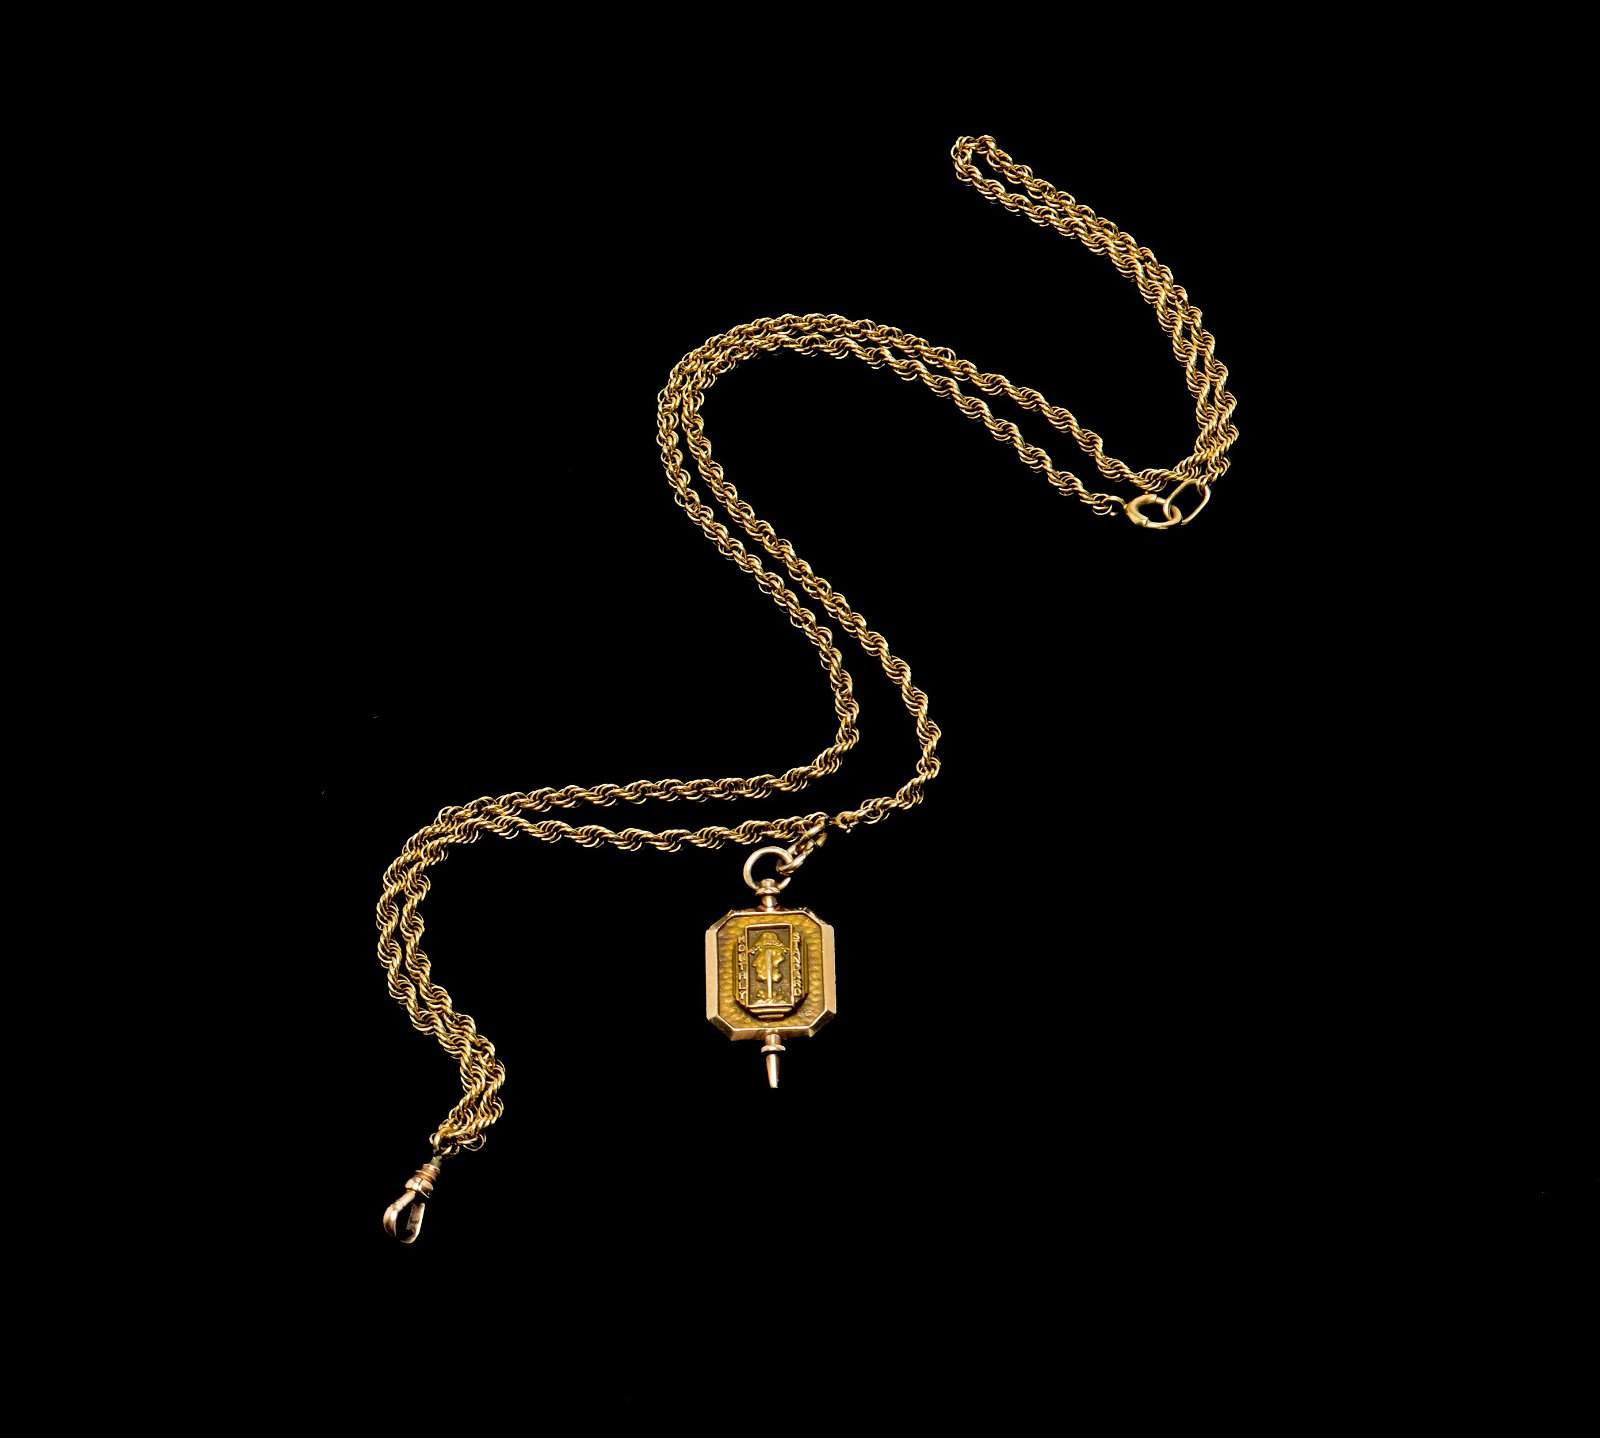 14K Gold Rope Chain Watch Fob w 10K Gold Pendant